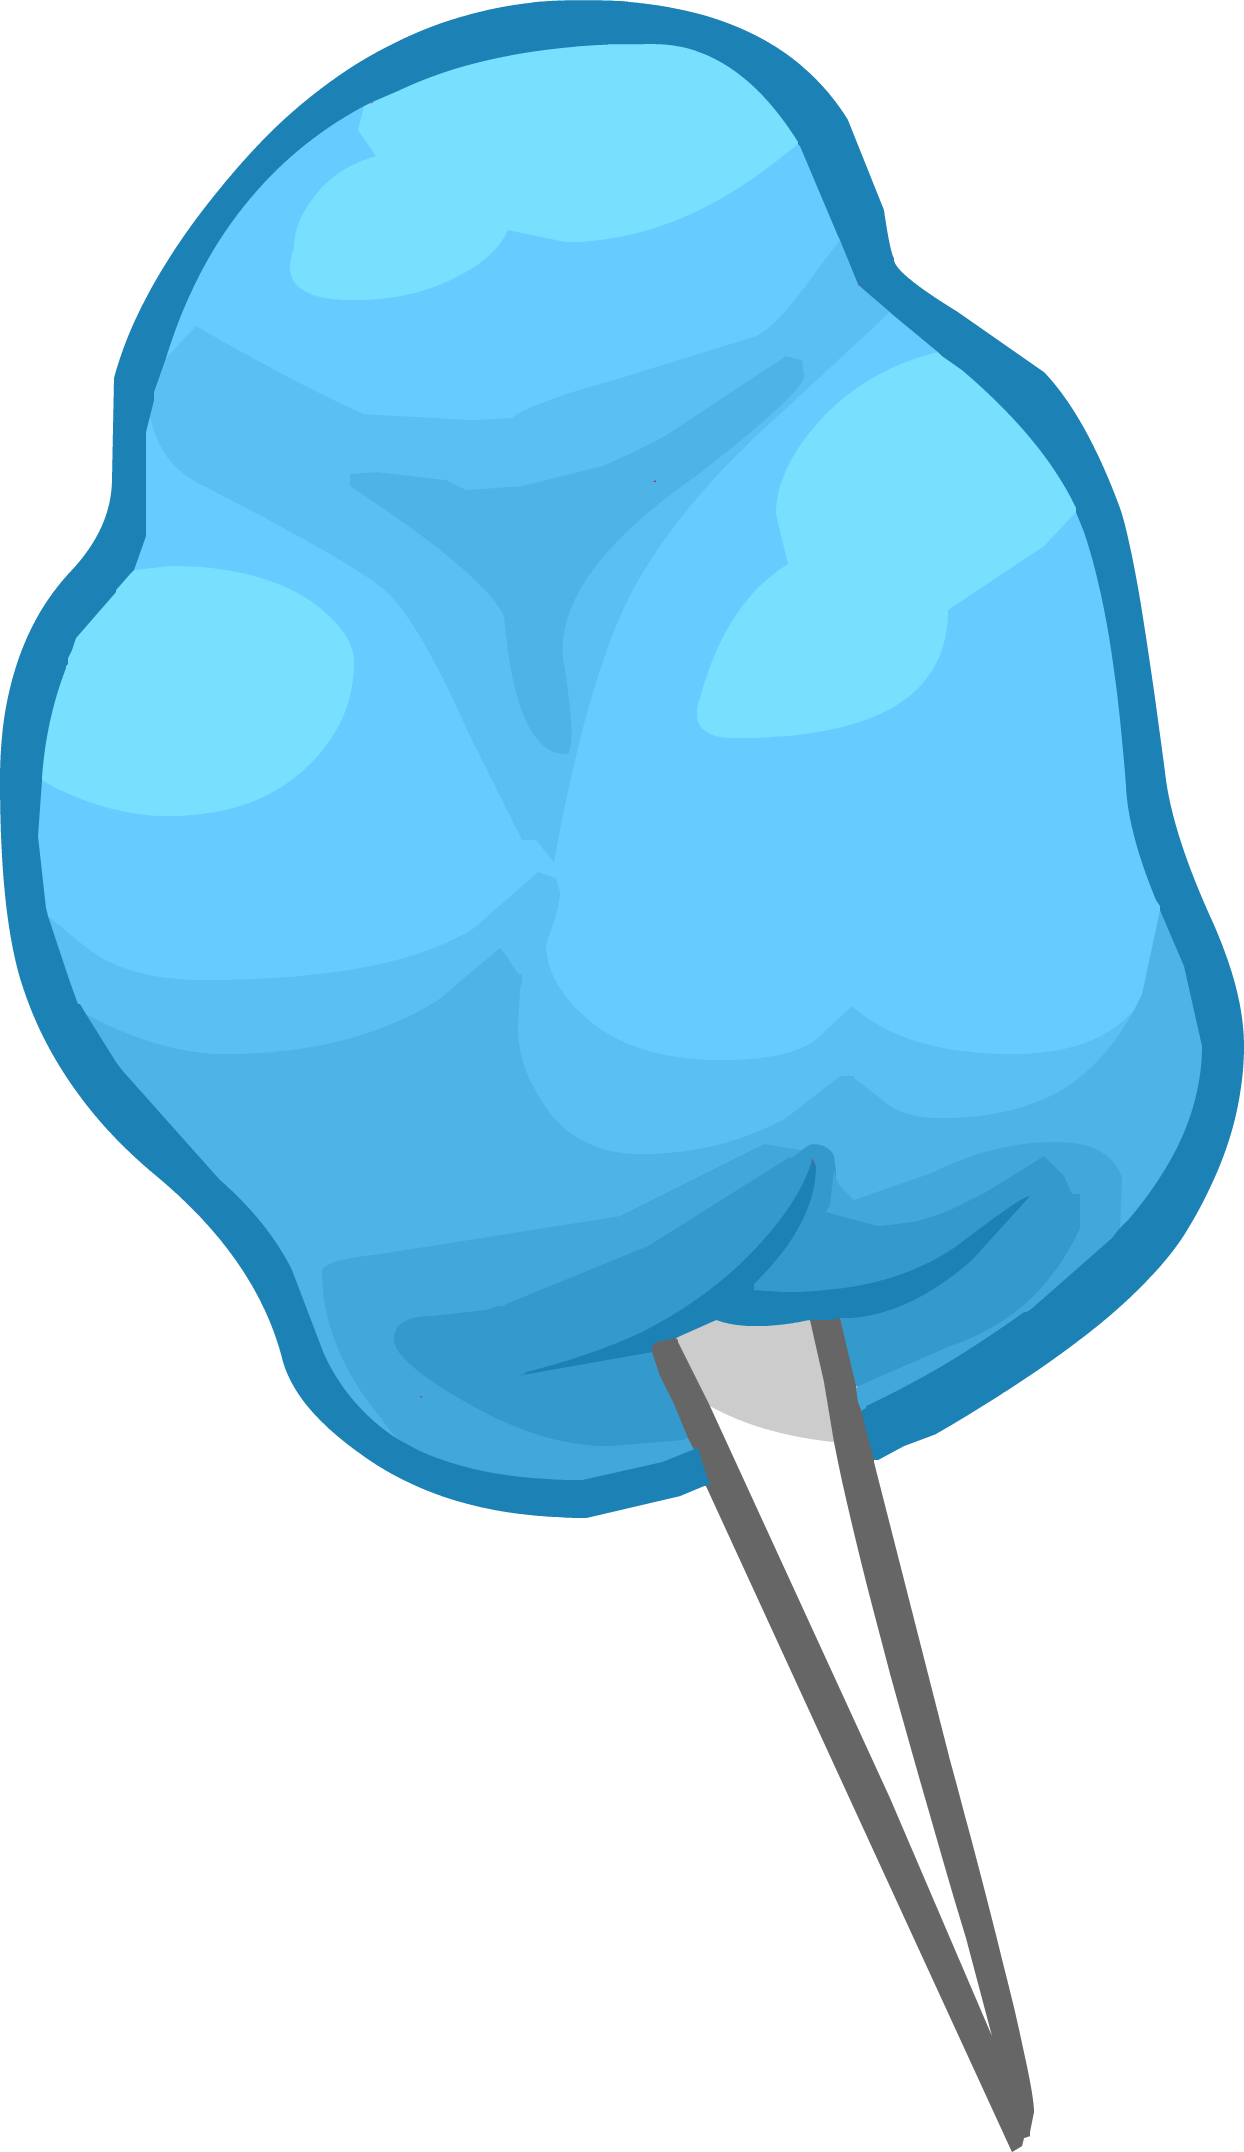 blue cotton candy clipart transparent png stickpng rh stickpng com free cotton candy clipart cotton candy clipart png